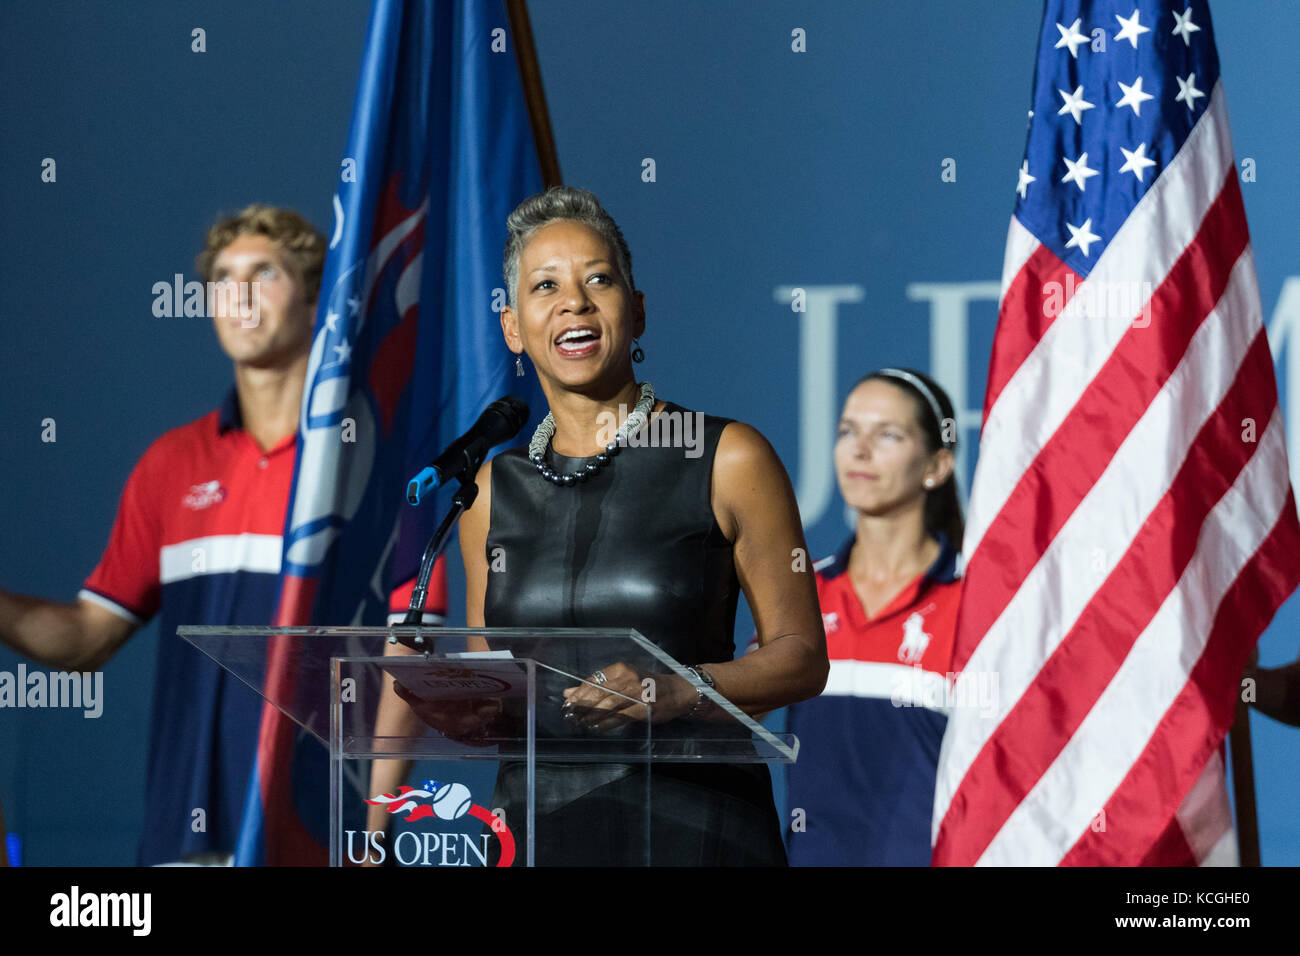 Katrina Adams CEO of USTA at the 2017 US Open Tennis Championships. - Stock Image